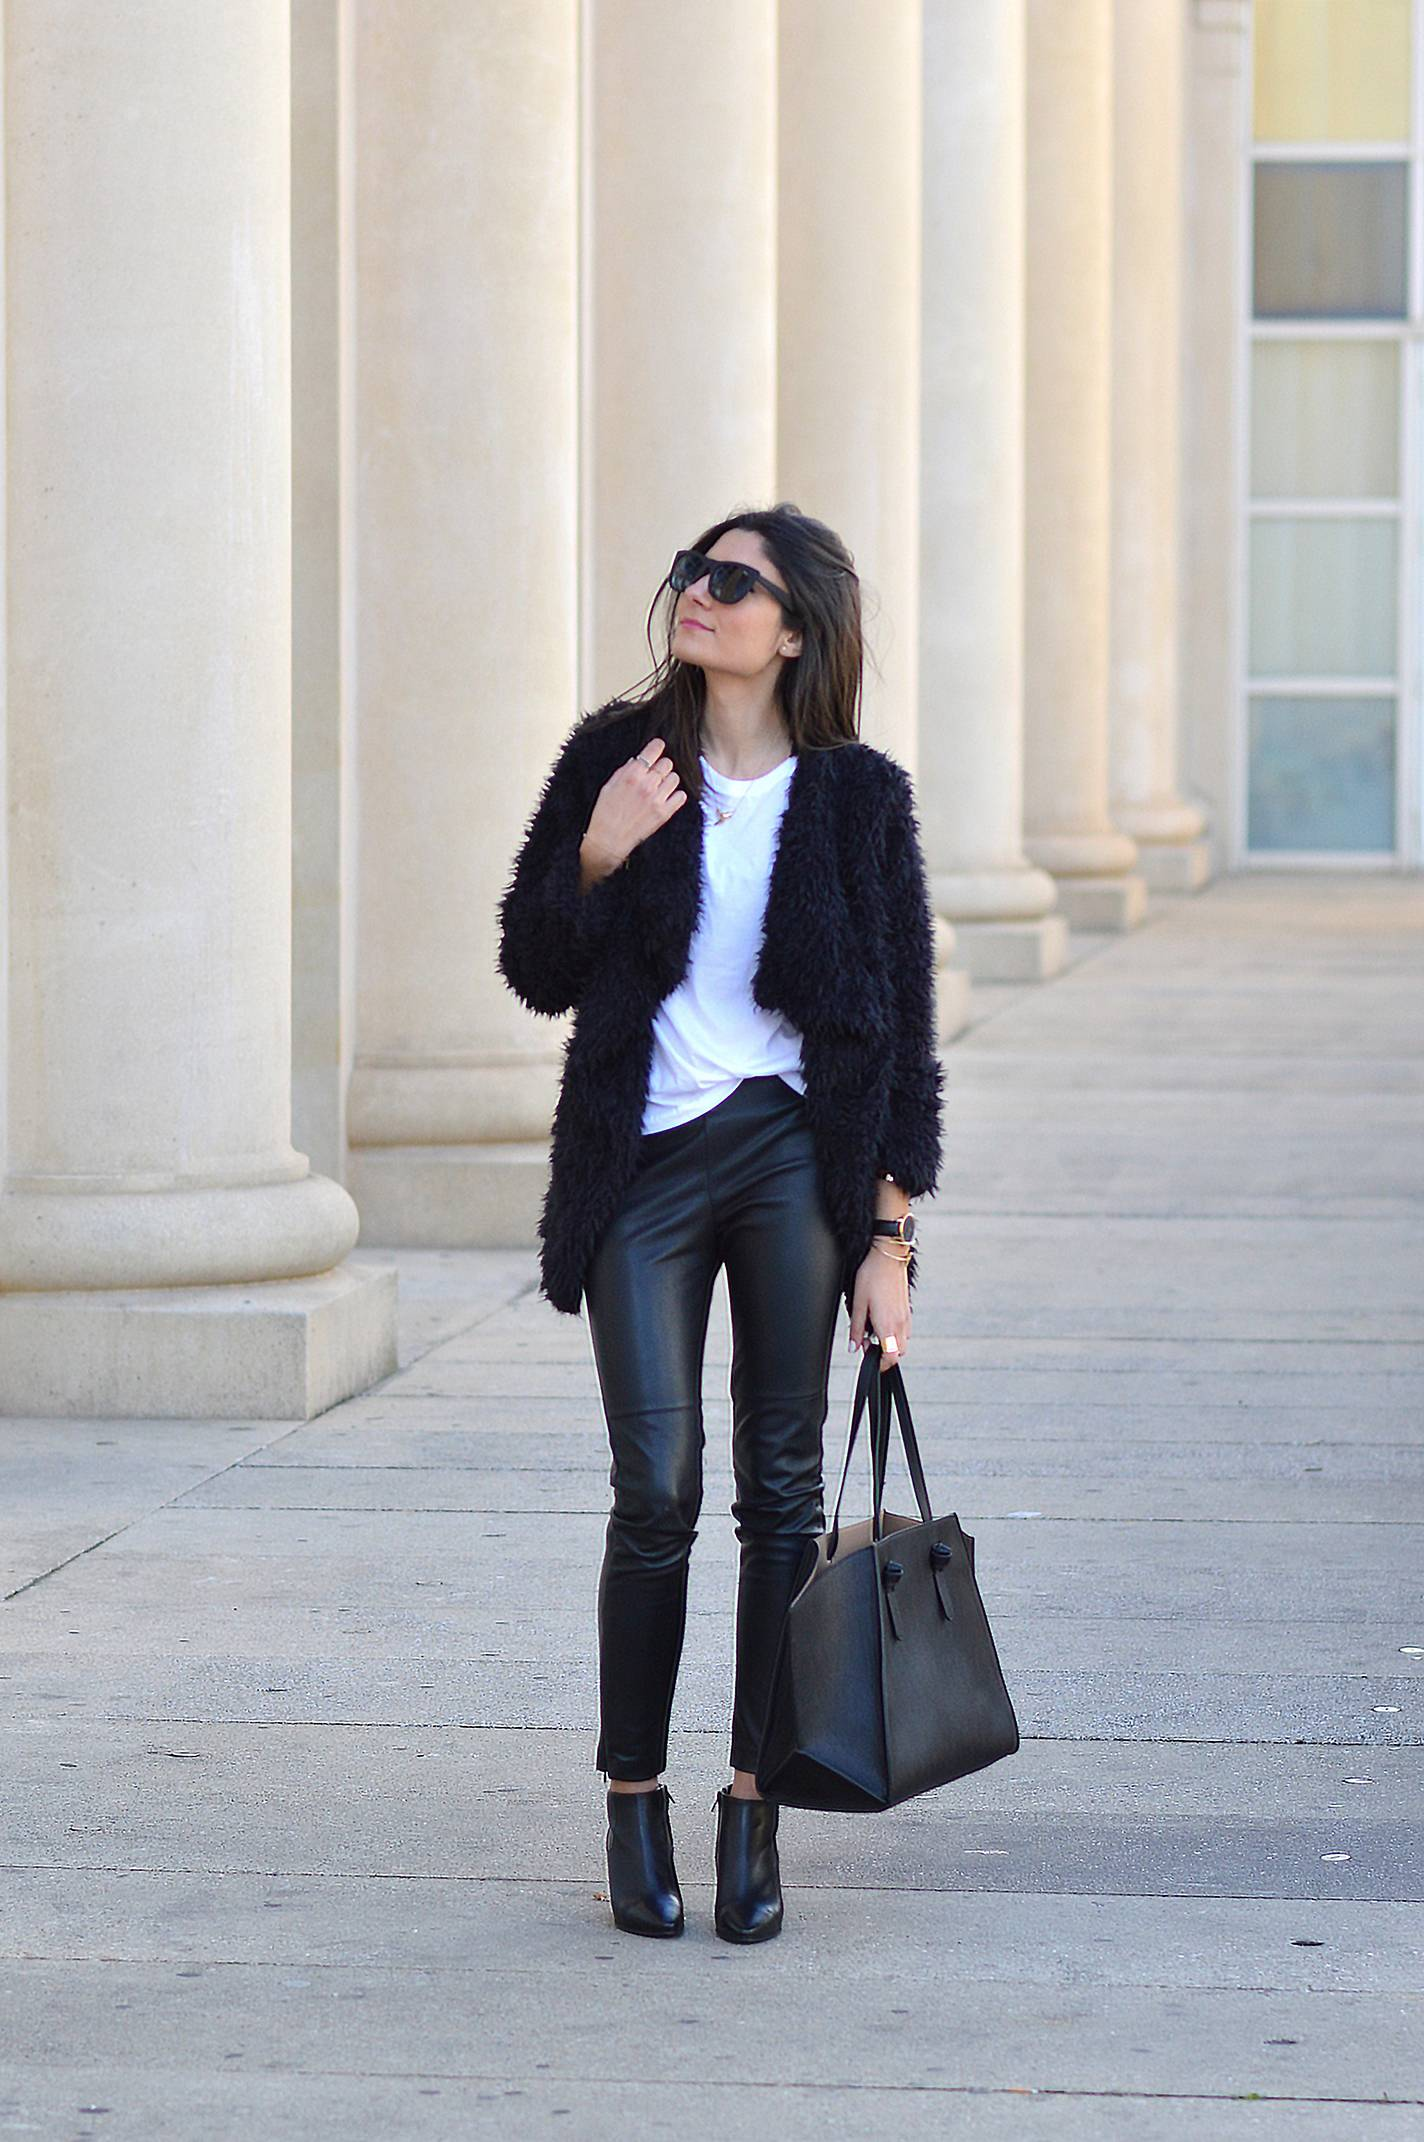 Federica L. is rocking this shaggy faux fur jacket, worn with leather leggings and a plain white tee. Try replicating this style for an easy and achievable cute winter look. Coat: Gold & Silver, T-shirt/Pants/Boots: Zara.